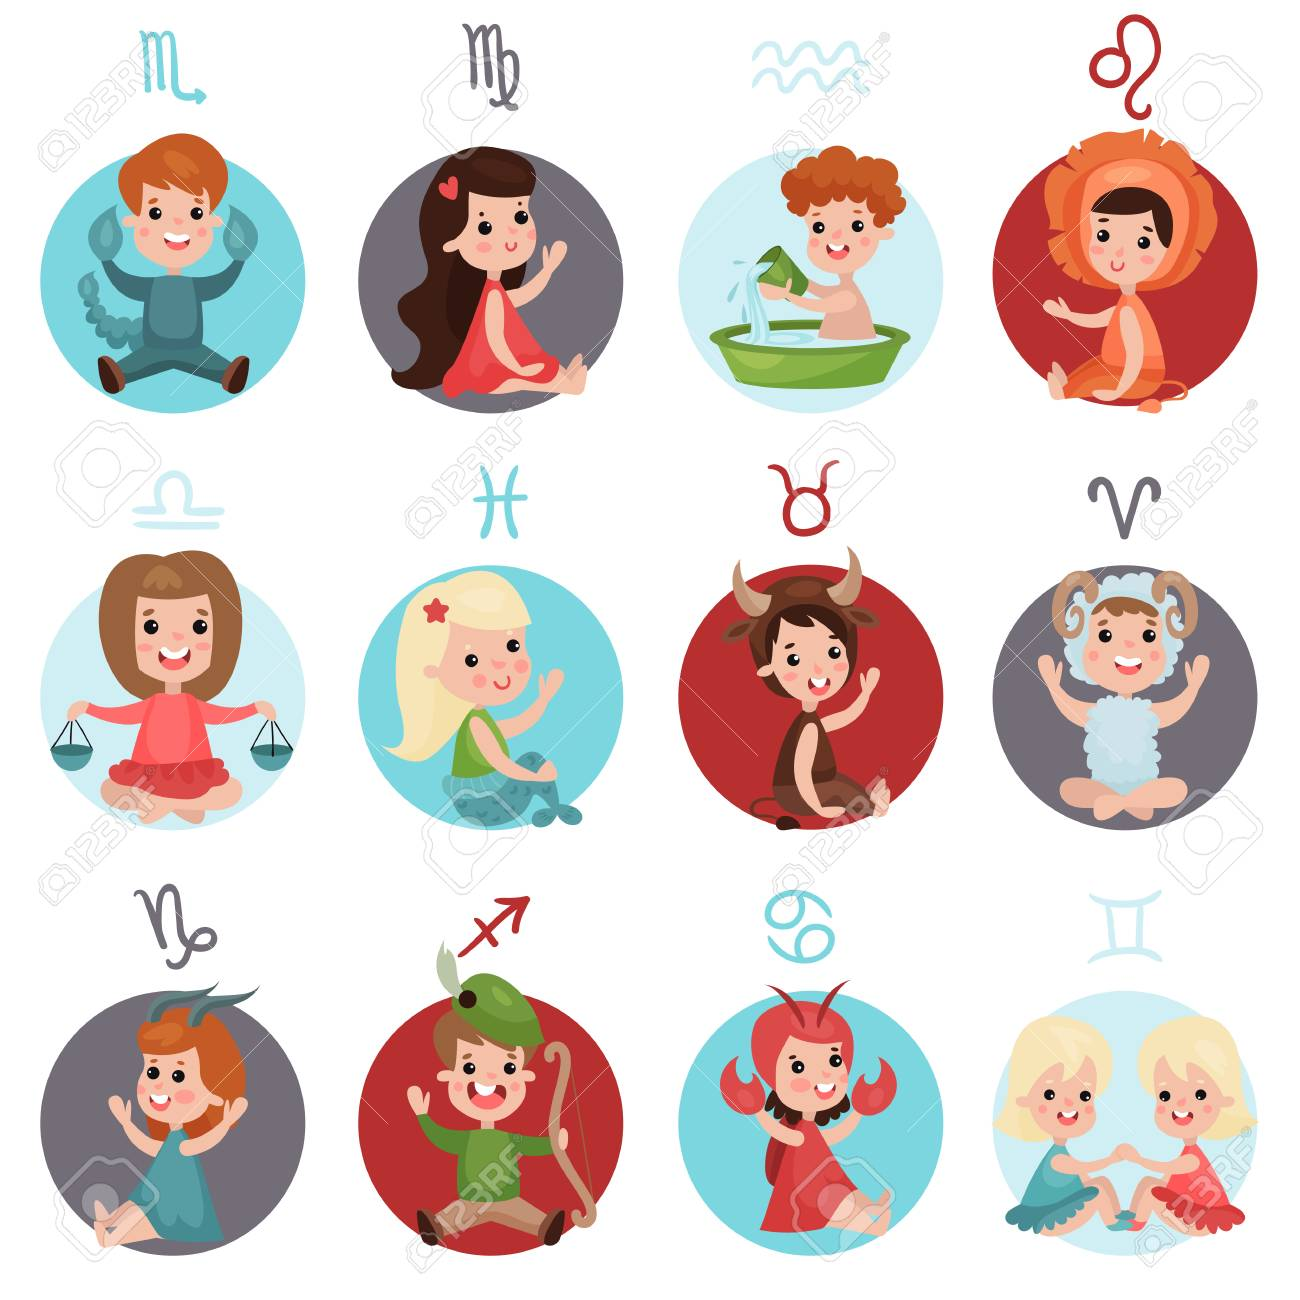 Adorable little kids wearing horoscope signs costumes set, in cartoon character Illustrations. - 87356059